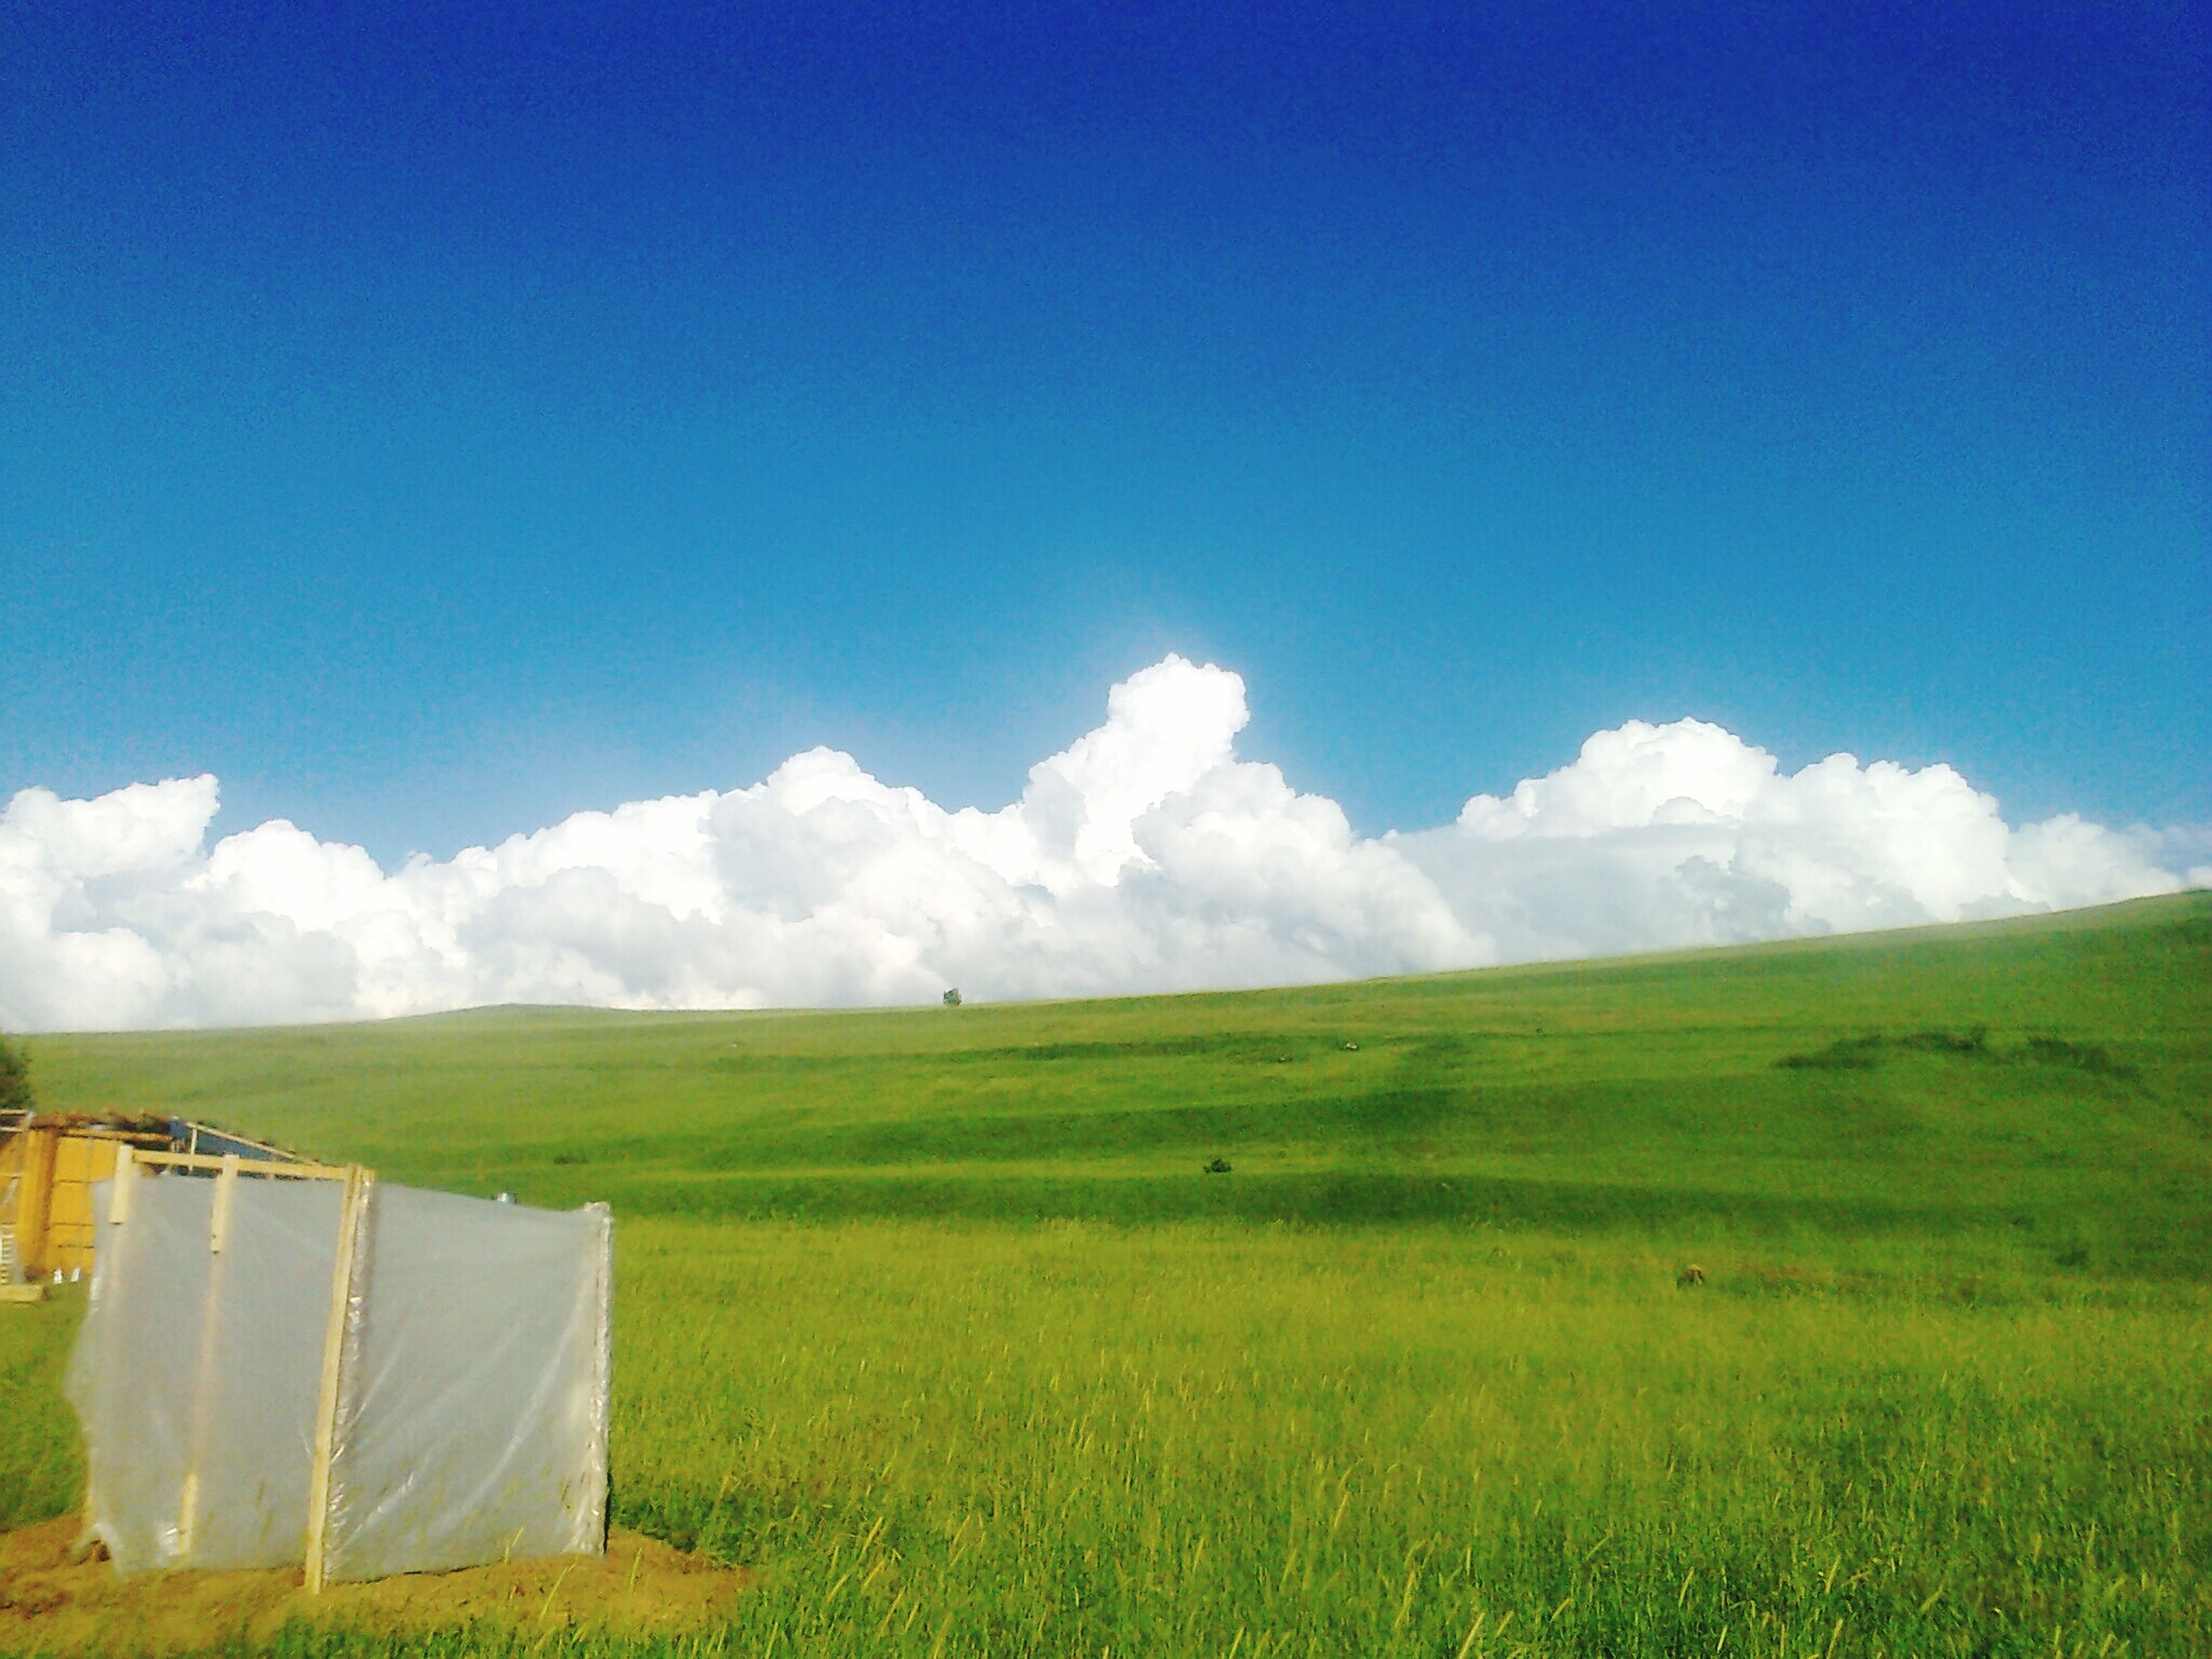 field, grass, landscape, sky, blue, tranquil scene, tranquility, grassy, scenics, rural scene, beauty in nature, nature, cloud, green color, cloud - sky, agriculture, farm, day, horizon over land, non-urban scene